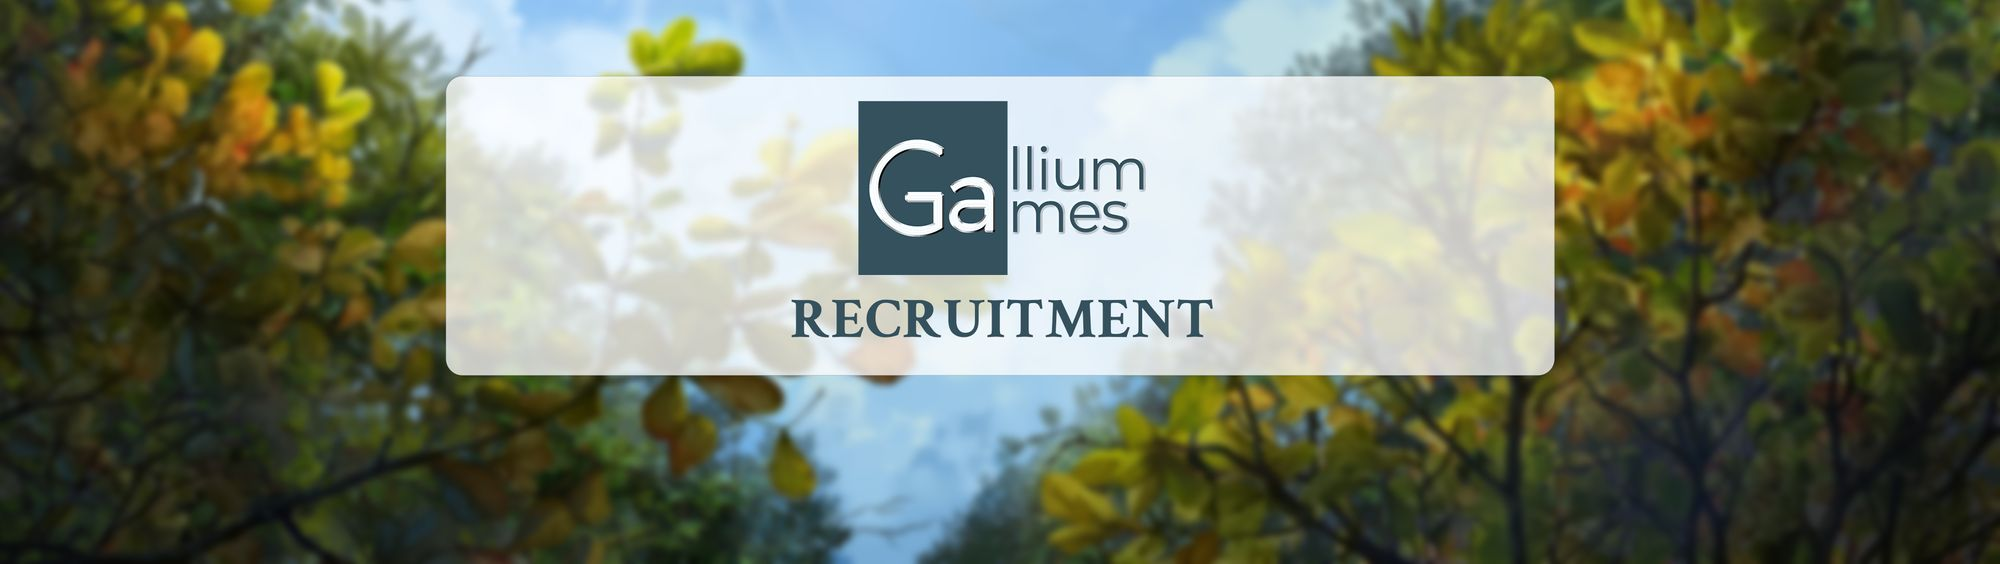 Gallium Games is recruiting!